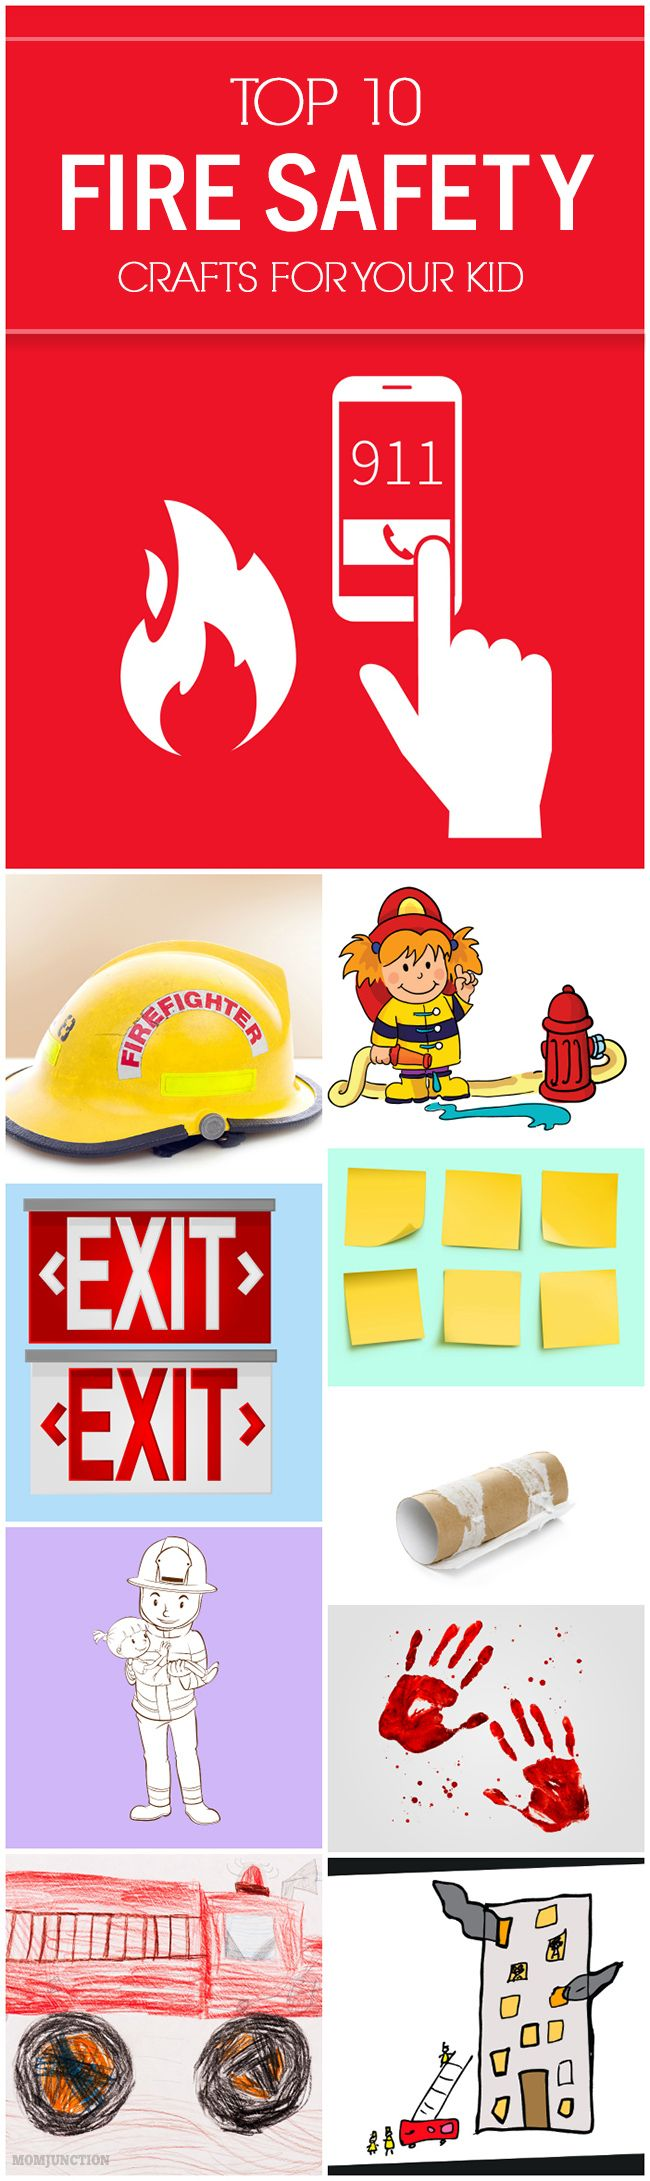 Top 10 Fire Safety Crafts For Preschoolers And Kids